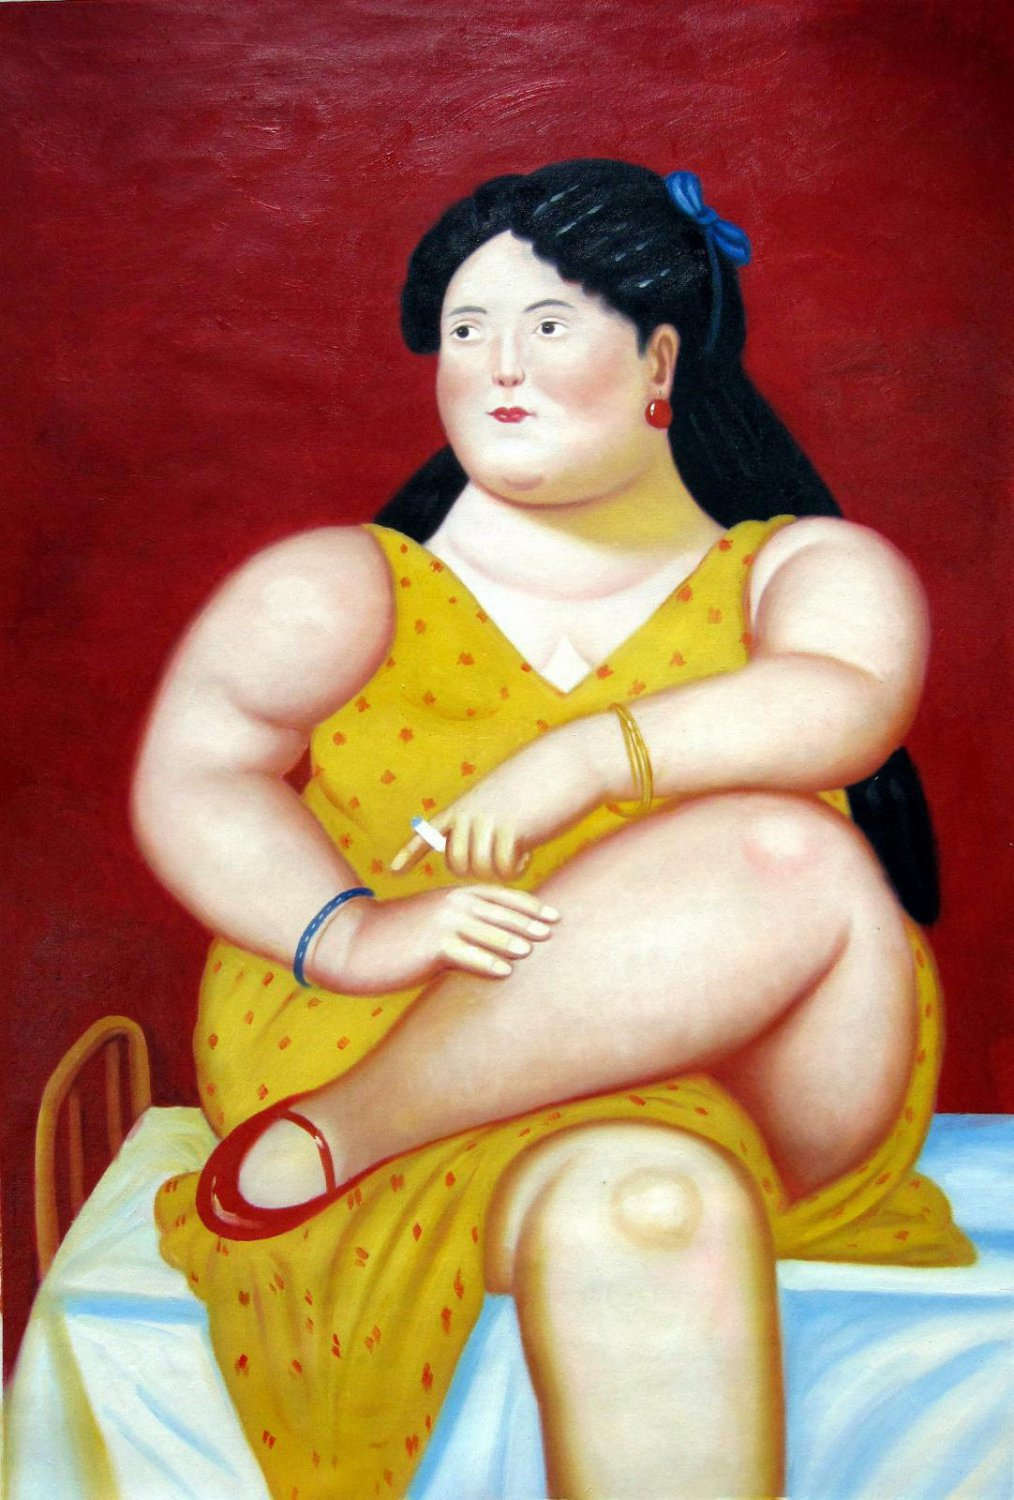 Rep. Fernando Botero 24x36 in. stretched Oil Painting Canvas Art Wall Decor modern48D